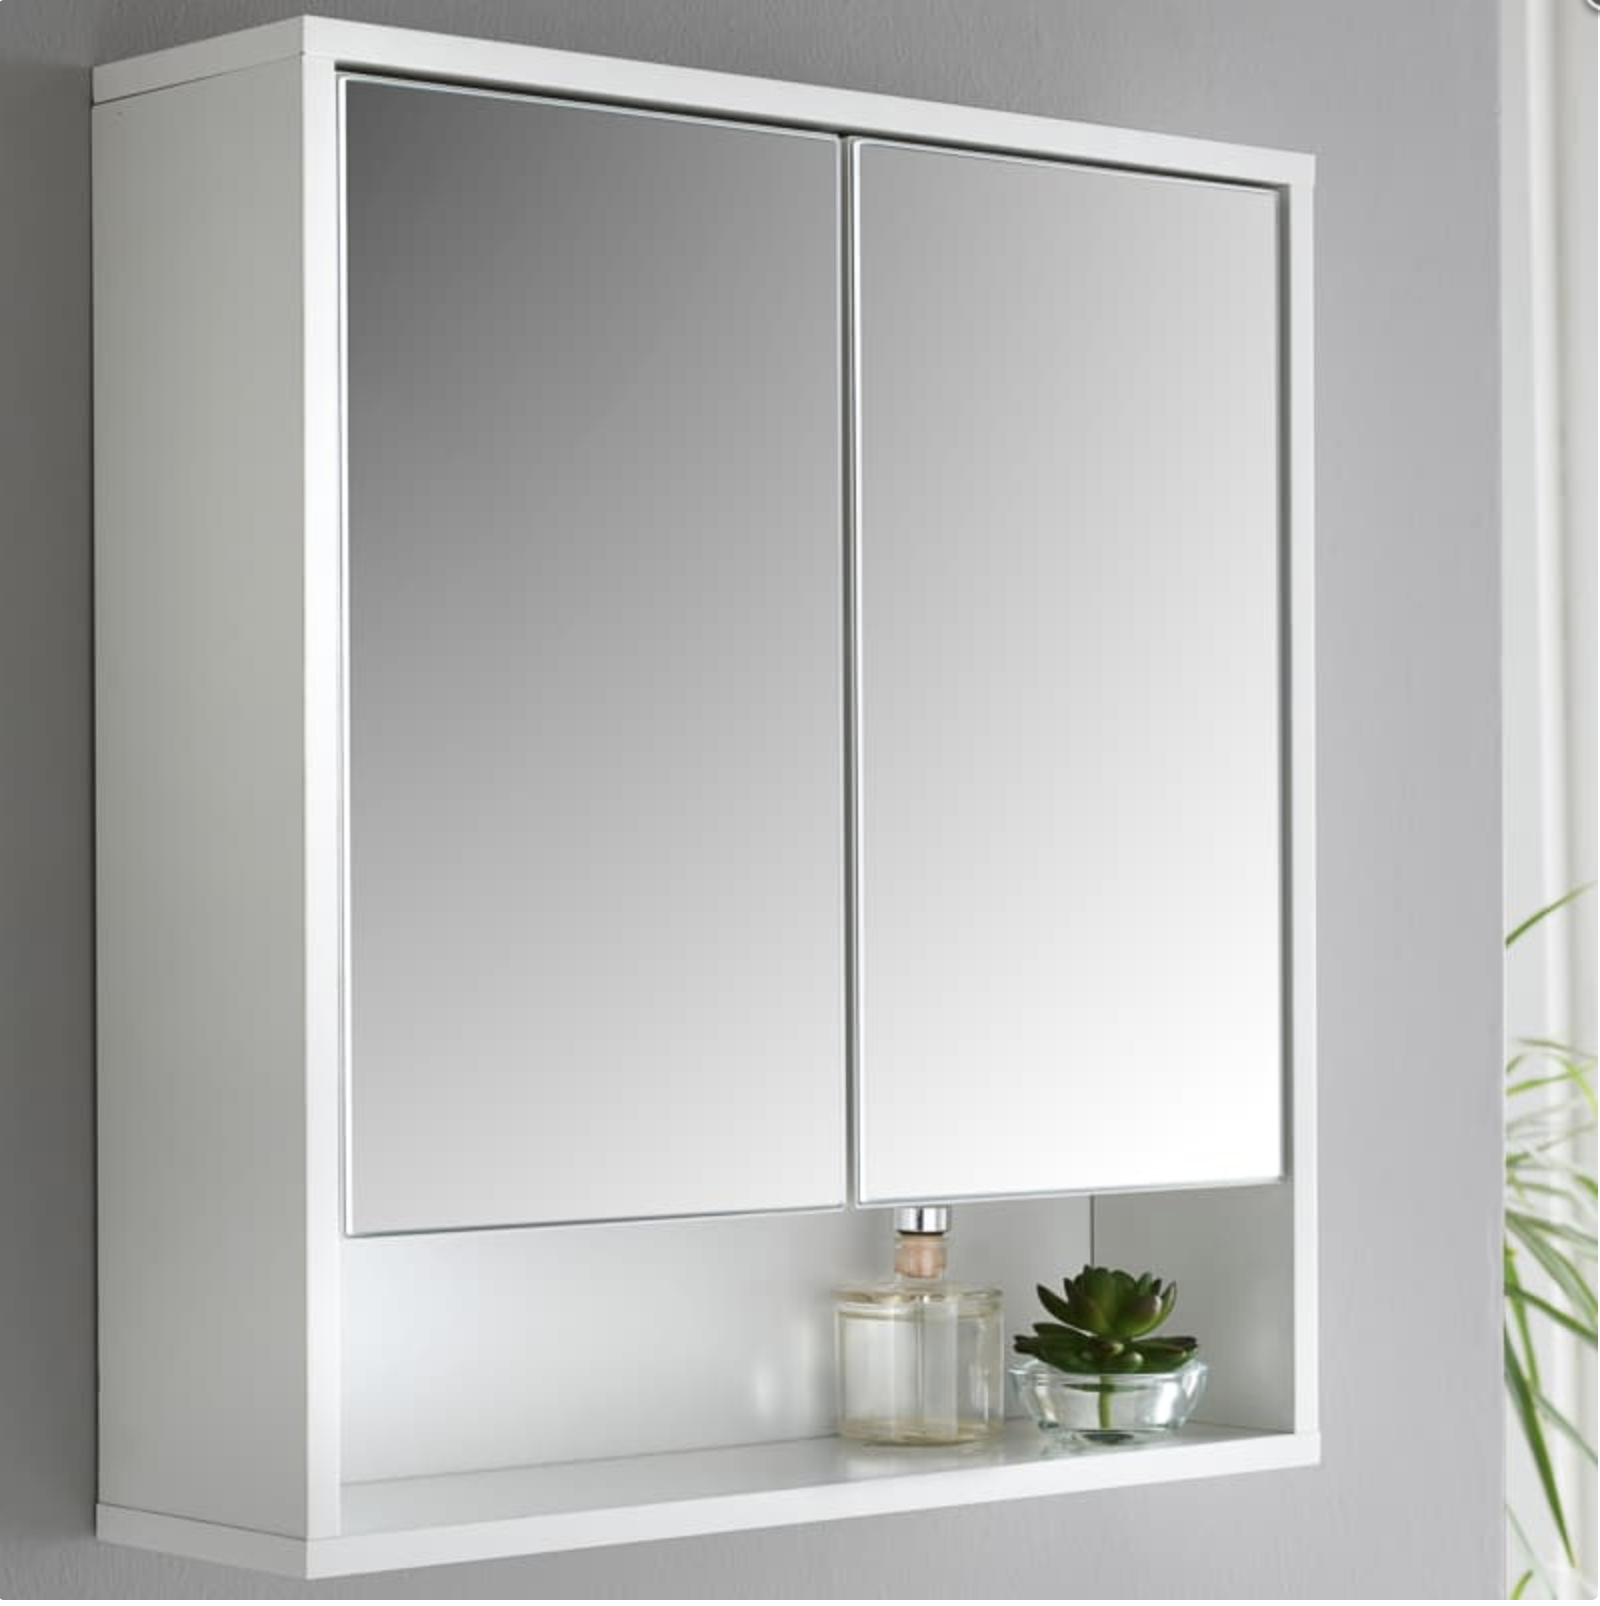 b&m stores furniture bathroom mirror